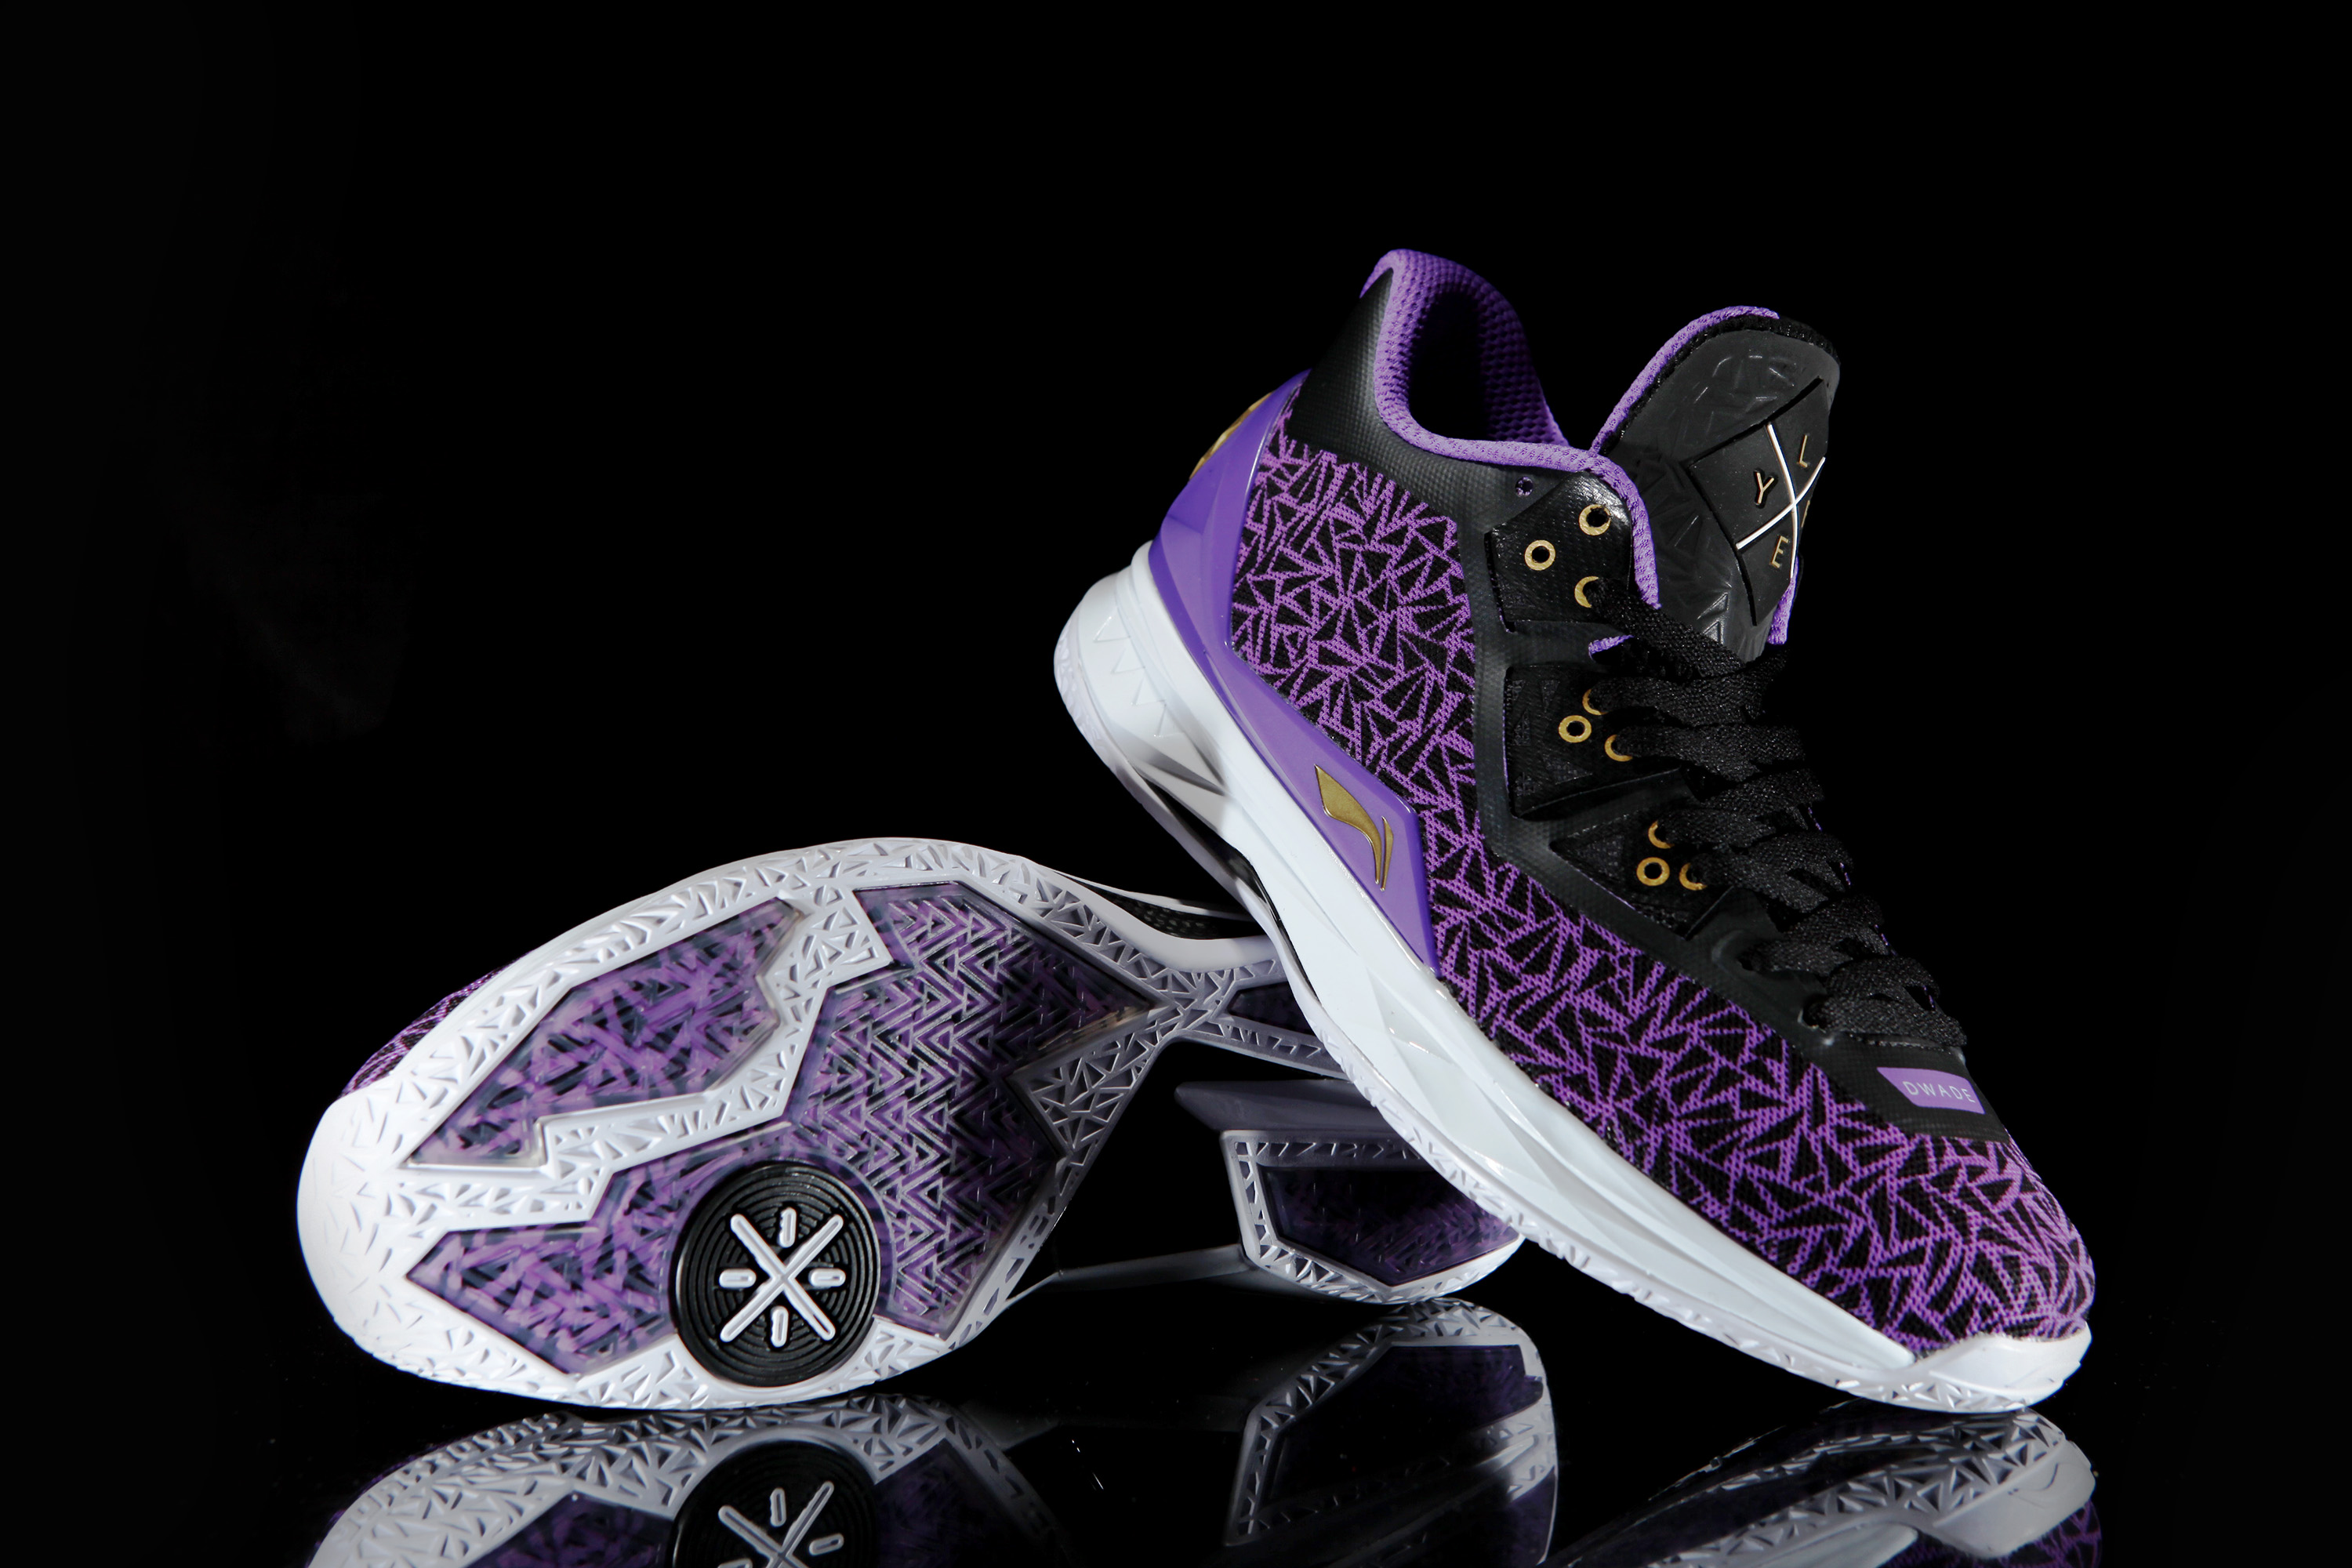 Li-Ning Way of Wade 4 LYFE